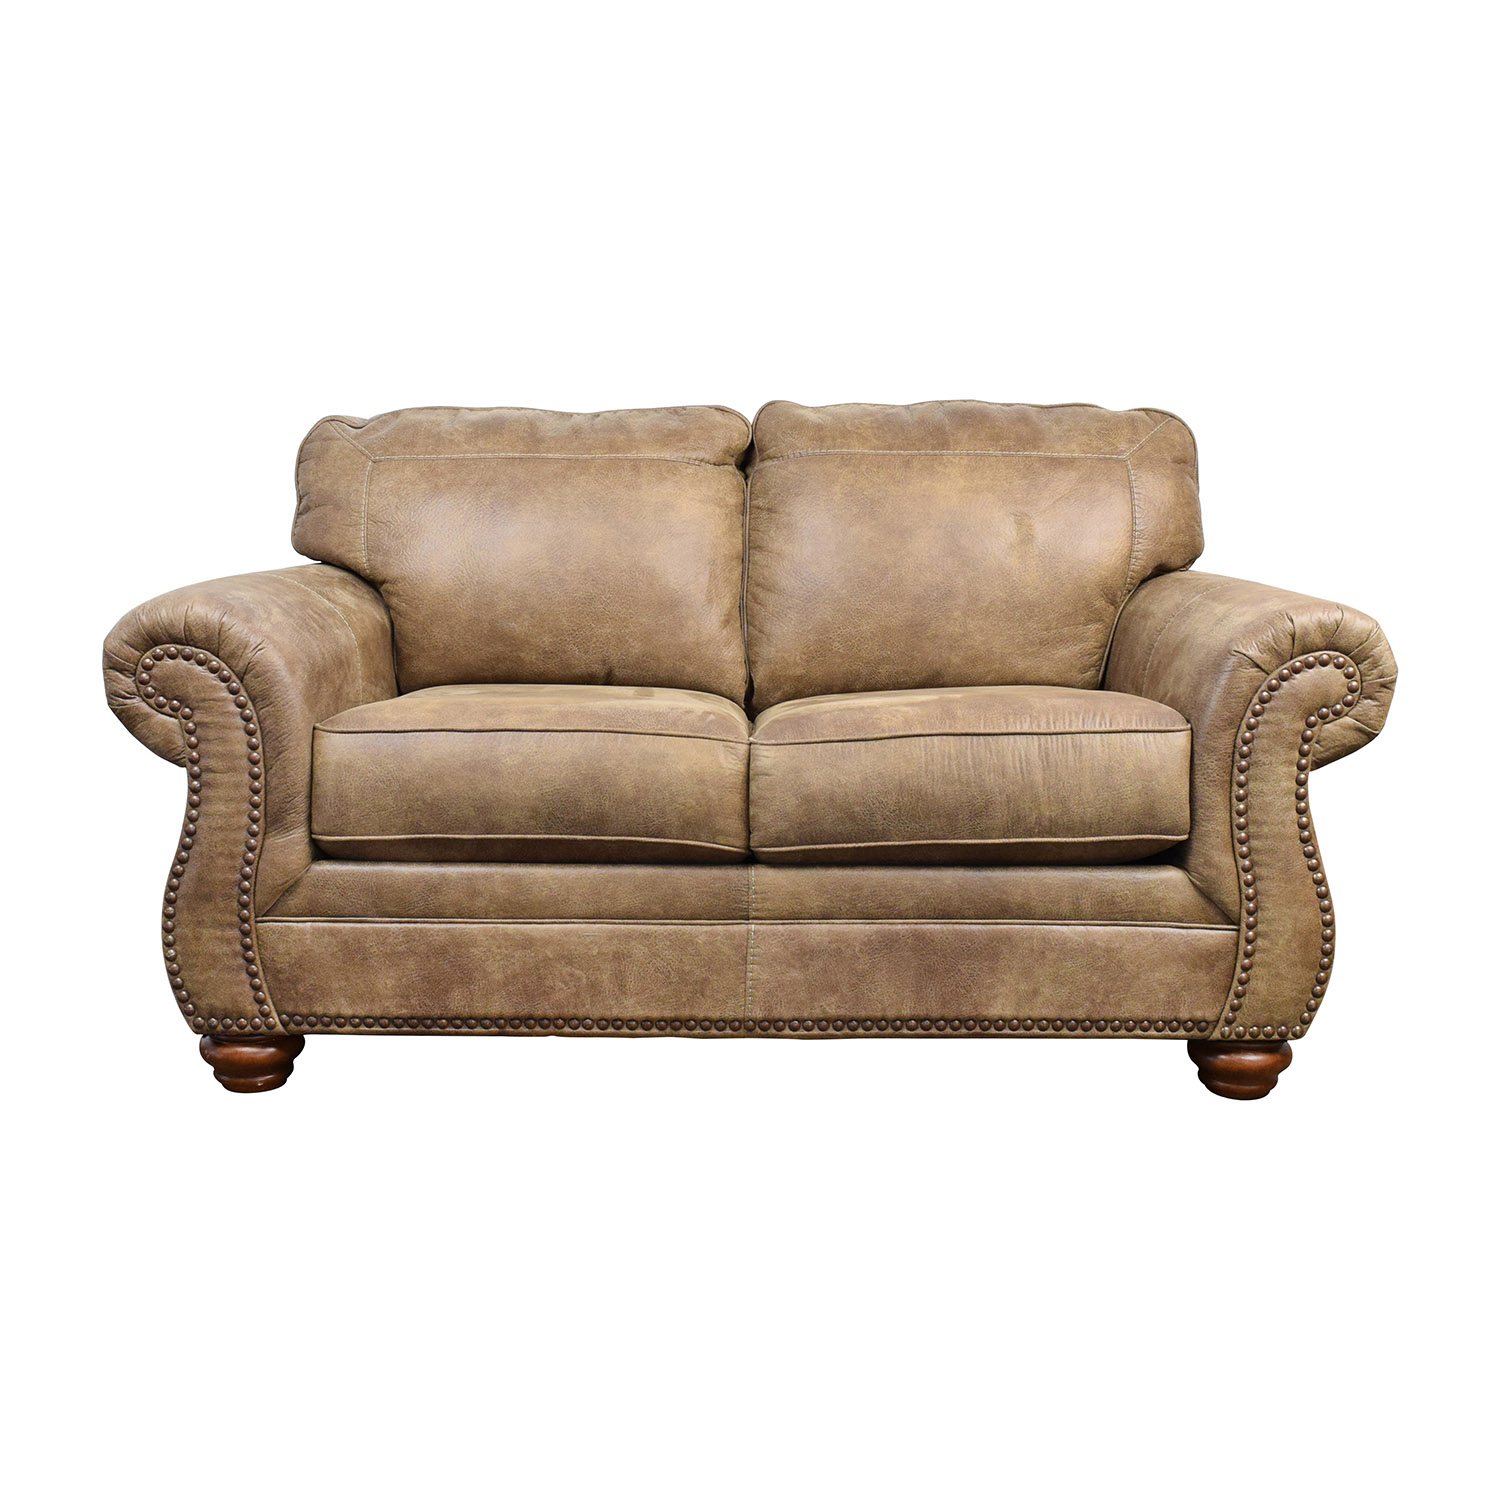 Faux Leather Sofa And Loveseat Brown Fabric Traditional